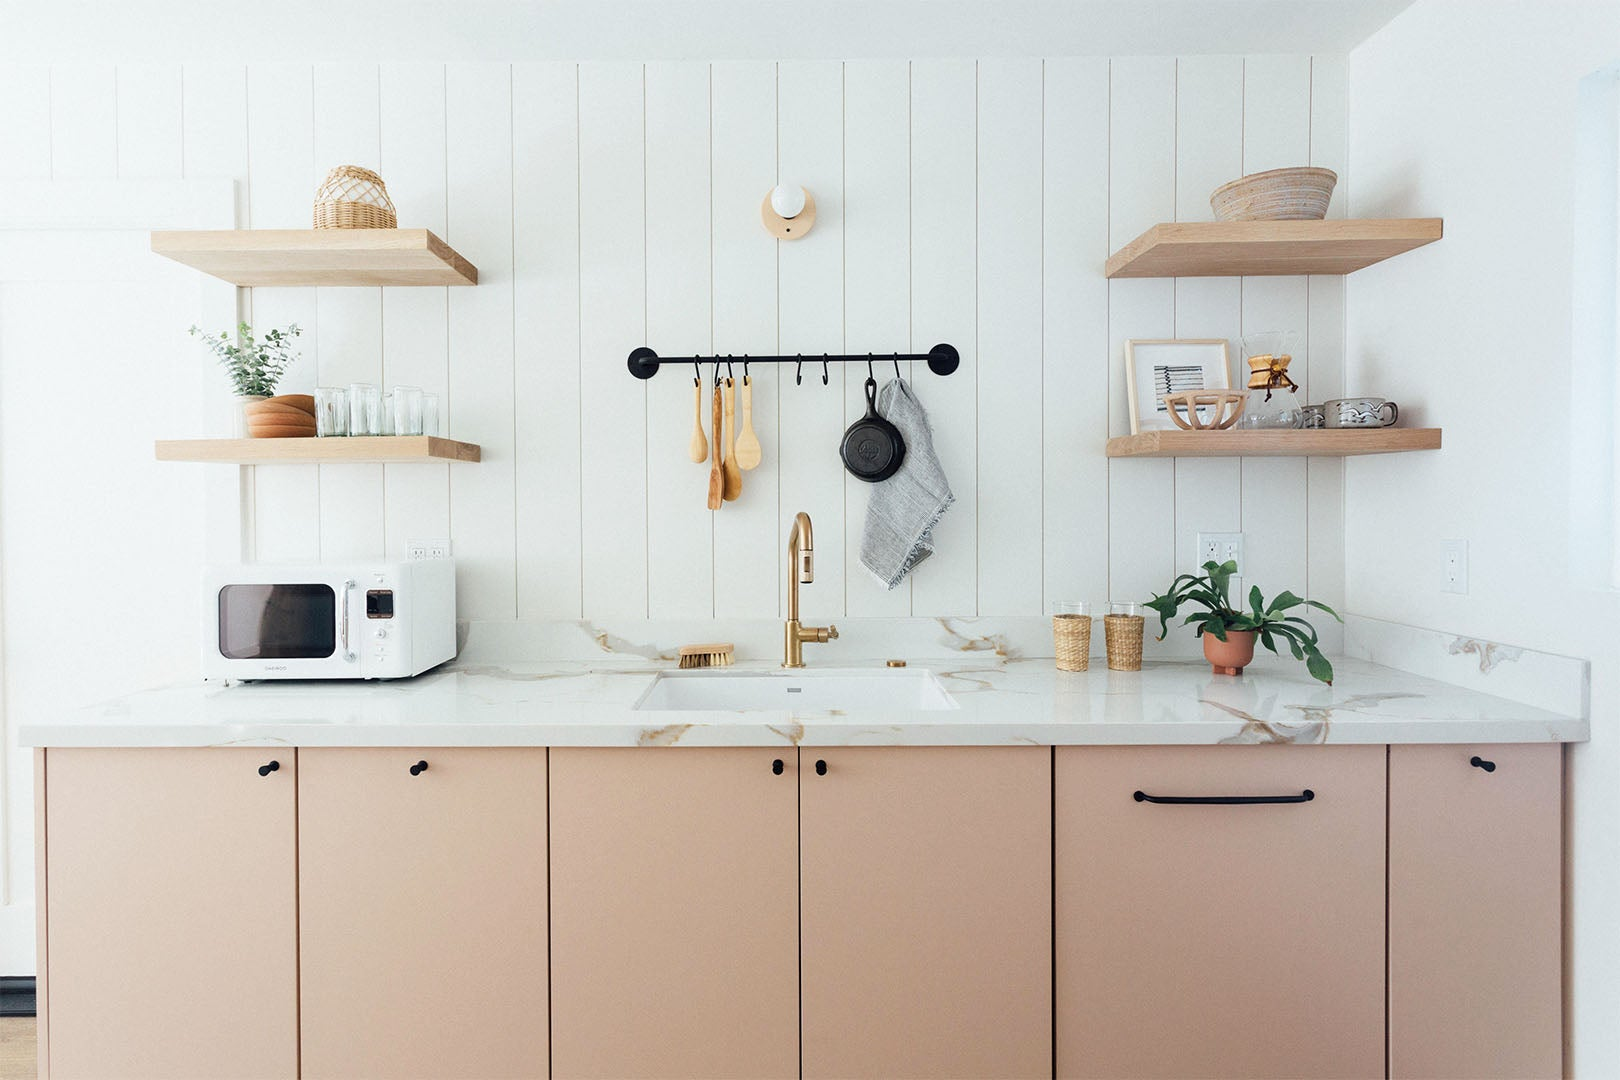 Upgrade Ikea Kitchen Cabinet Doors With These 7 Companies